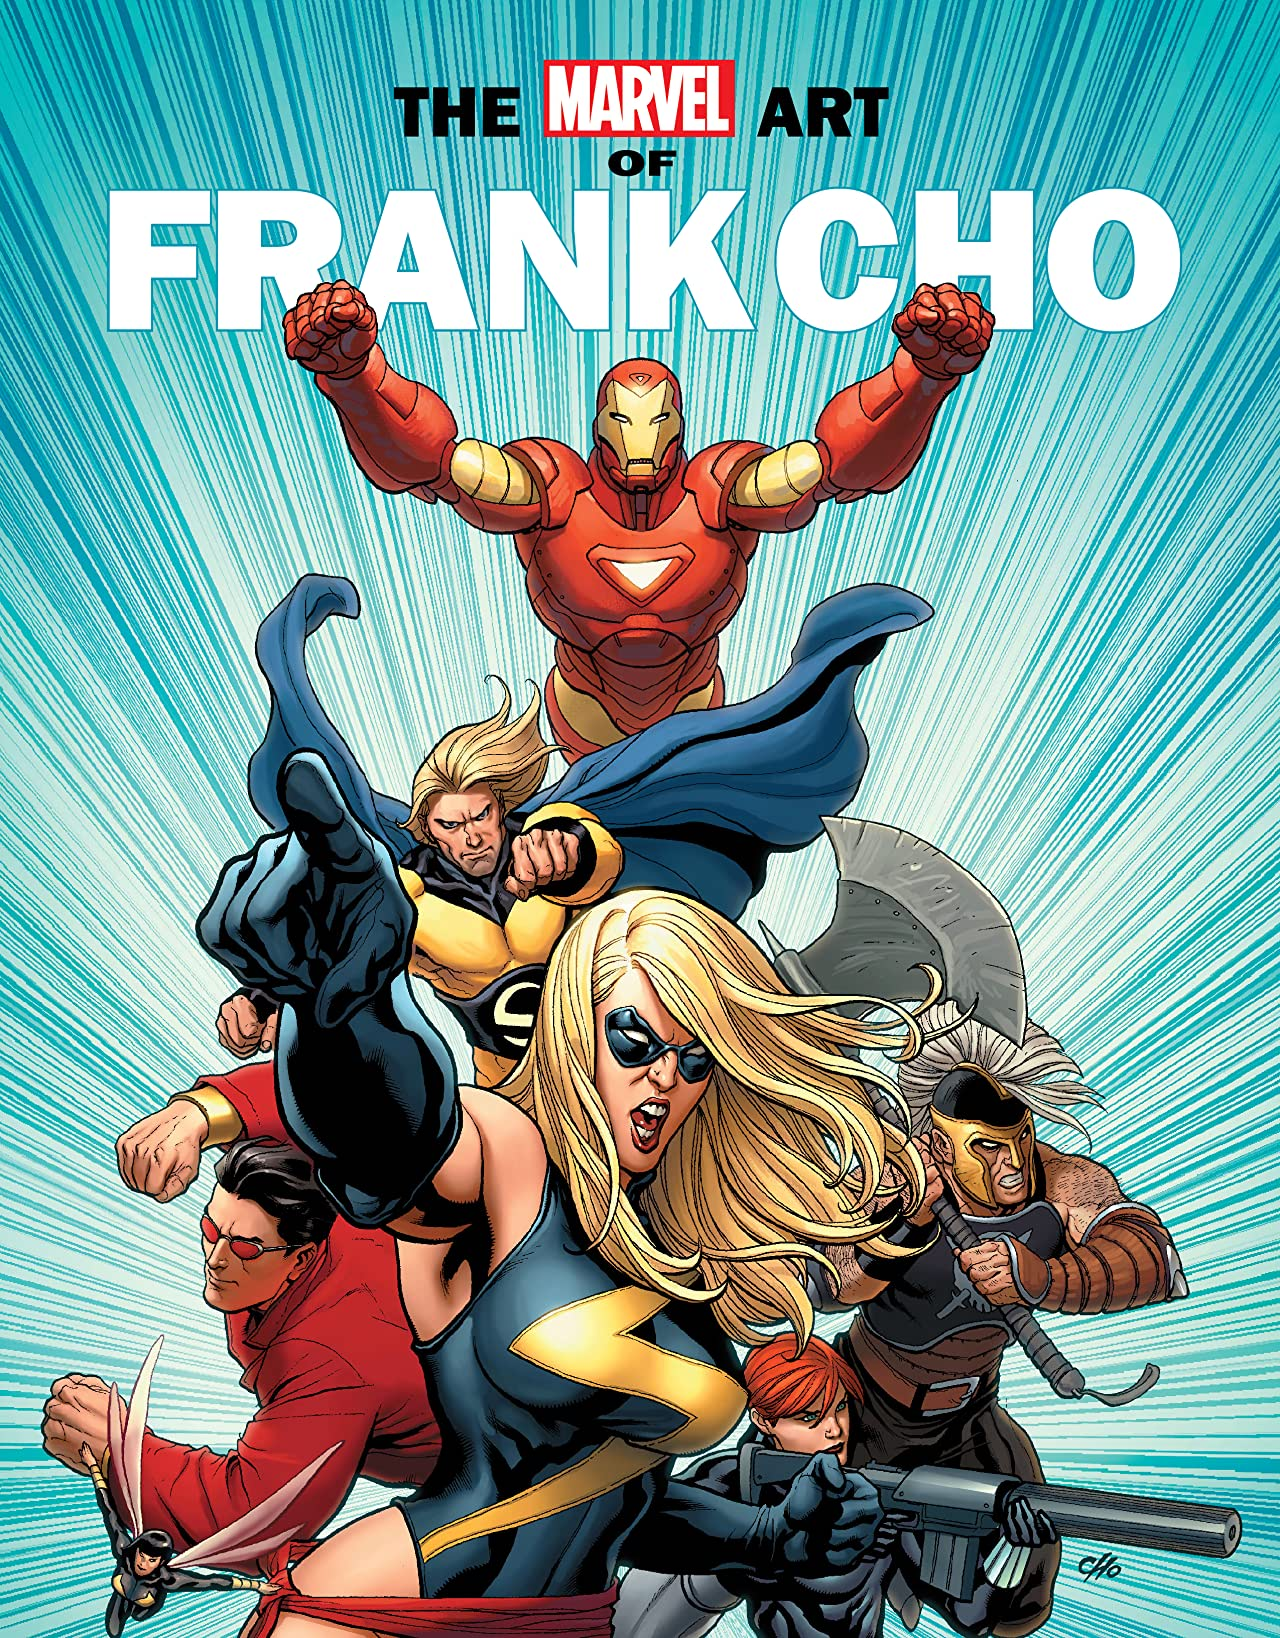 Marvel Monograph: The Art Of Frank Cho (Trade Paperback)